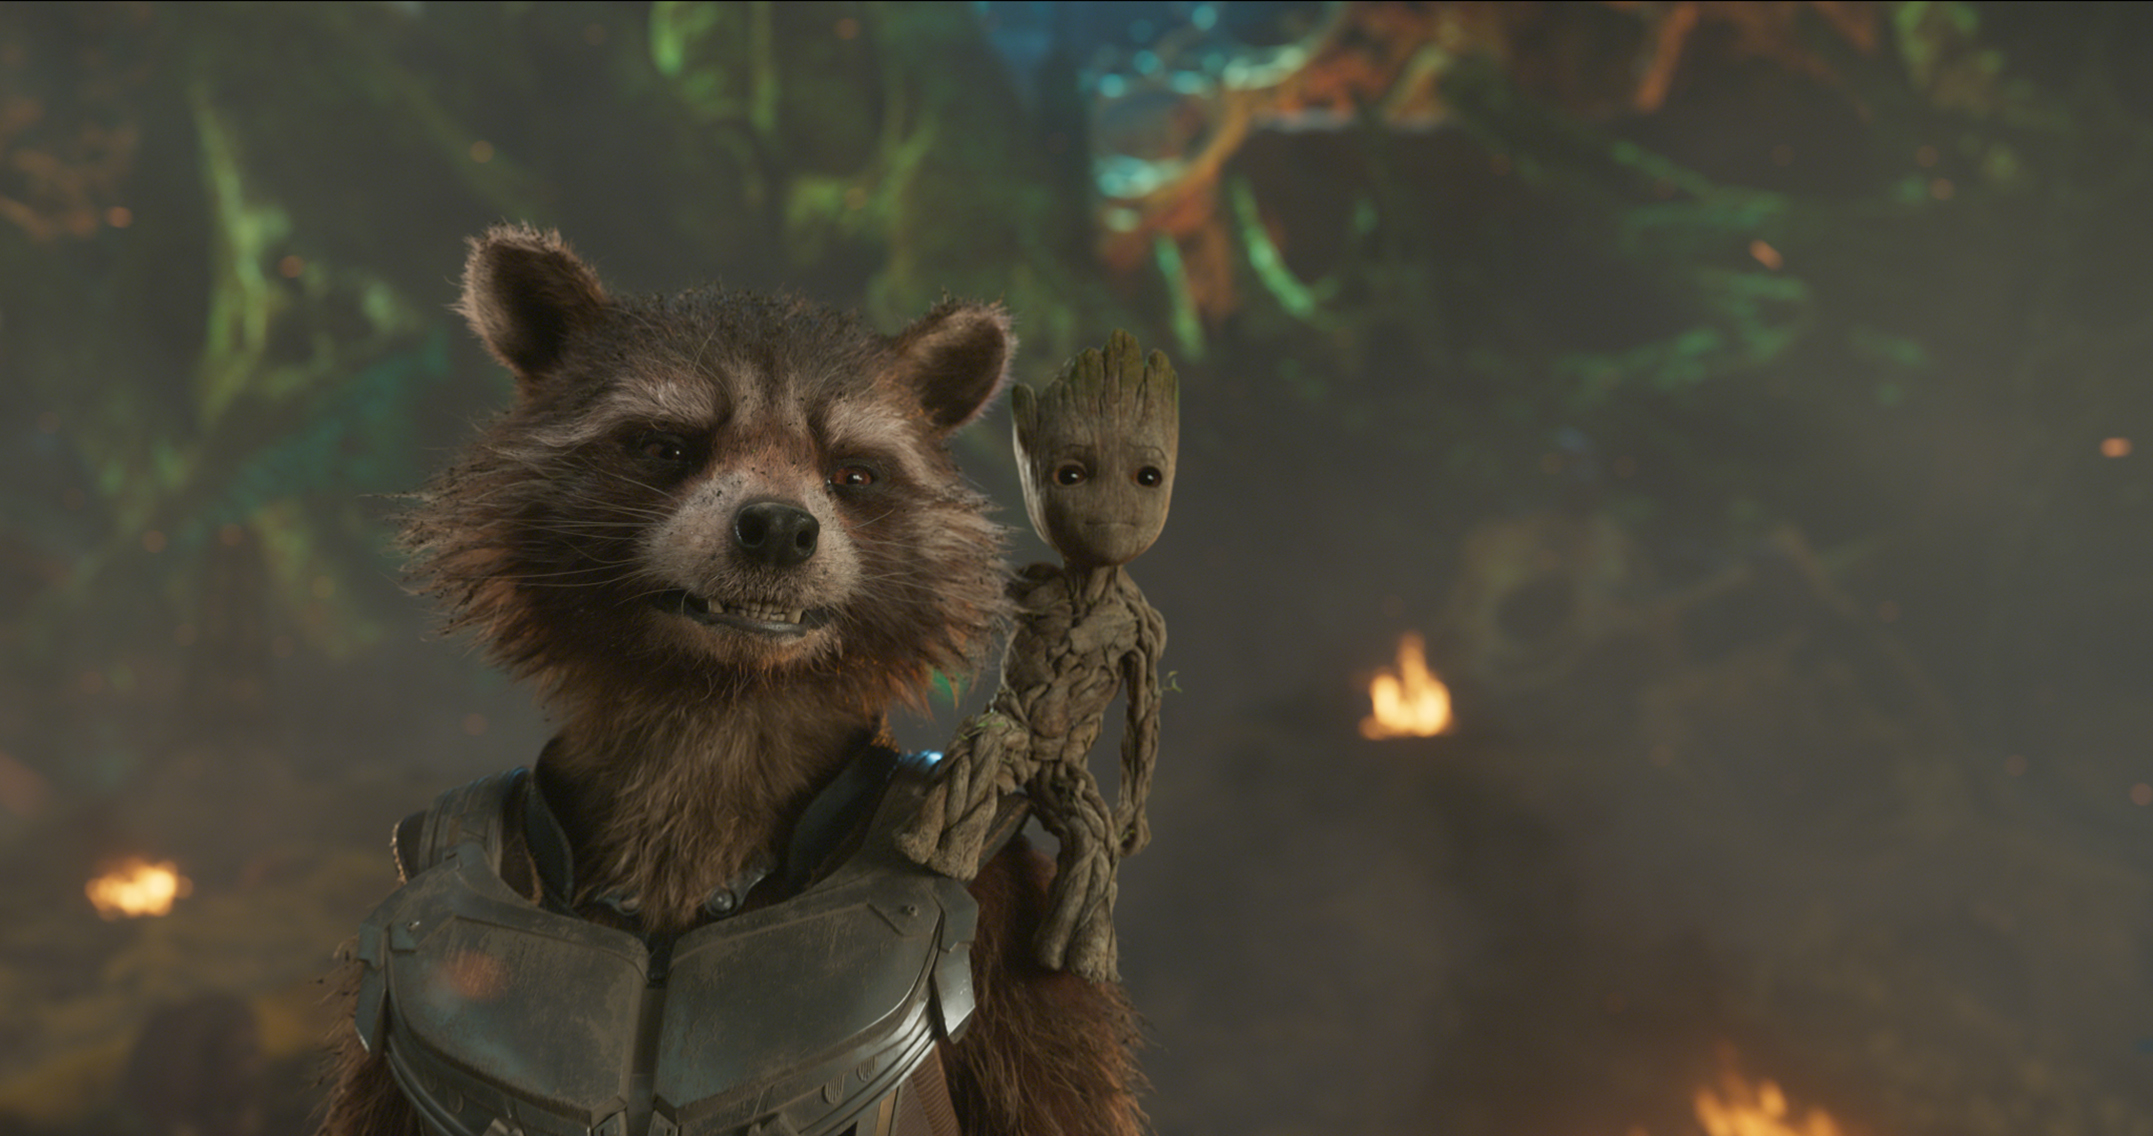 Guardians of the Galaxy Vol 2 Movie Image 2